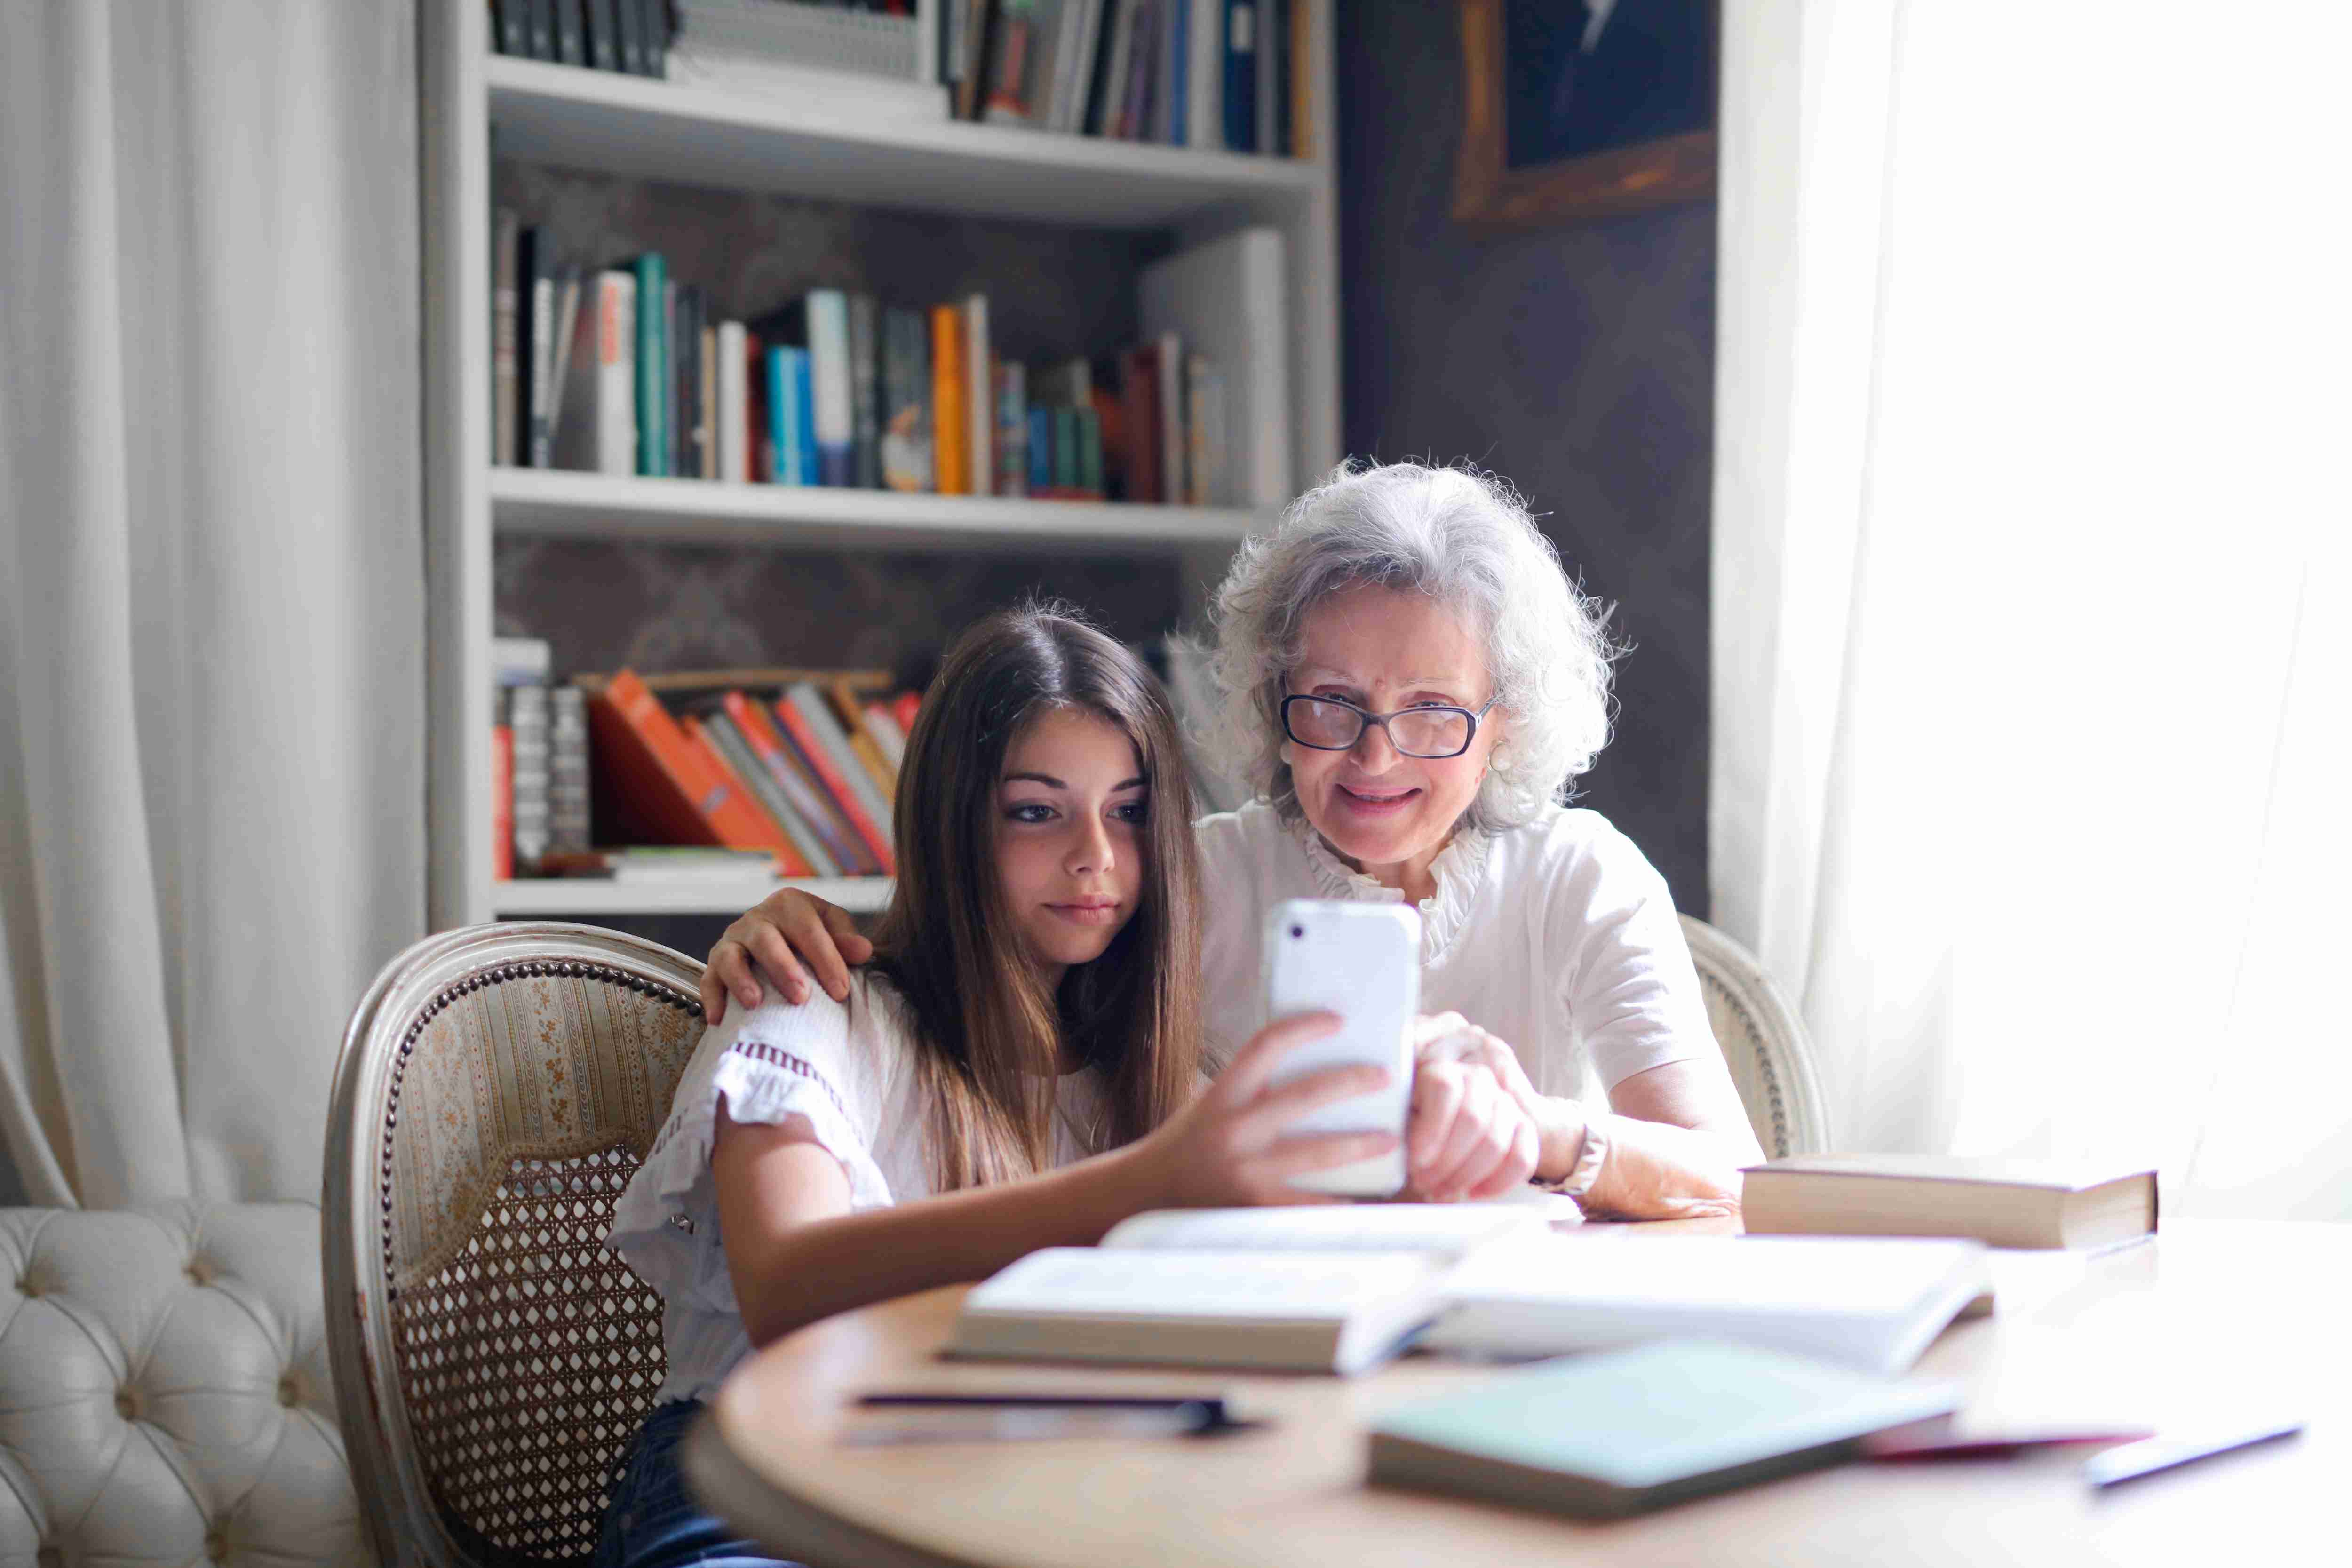 a young girl using social media and her grandmother is teaching her